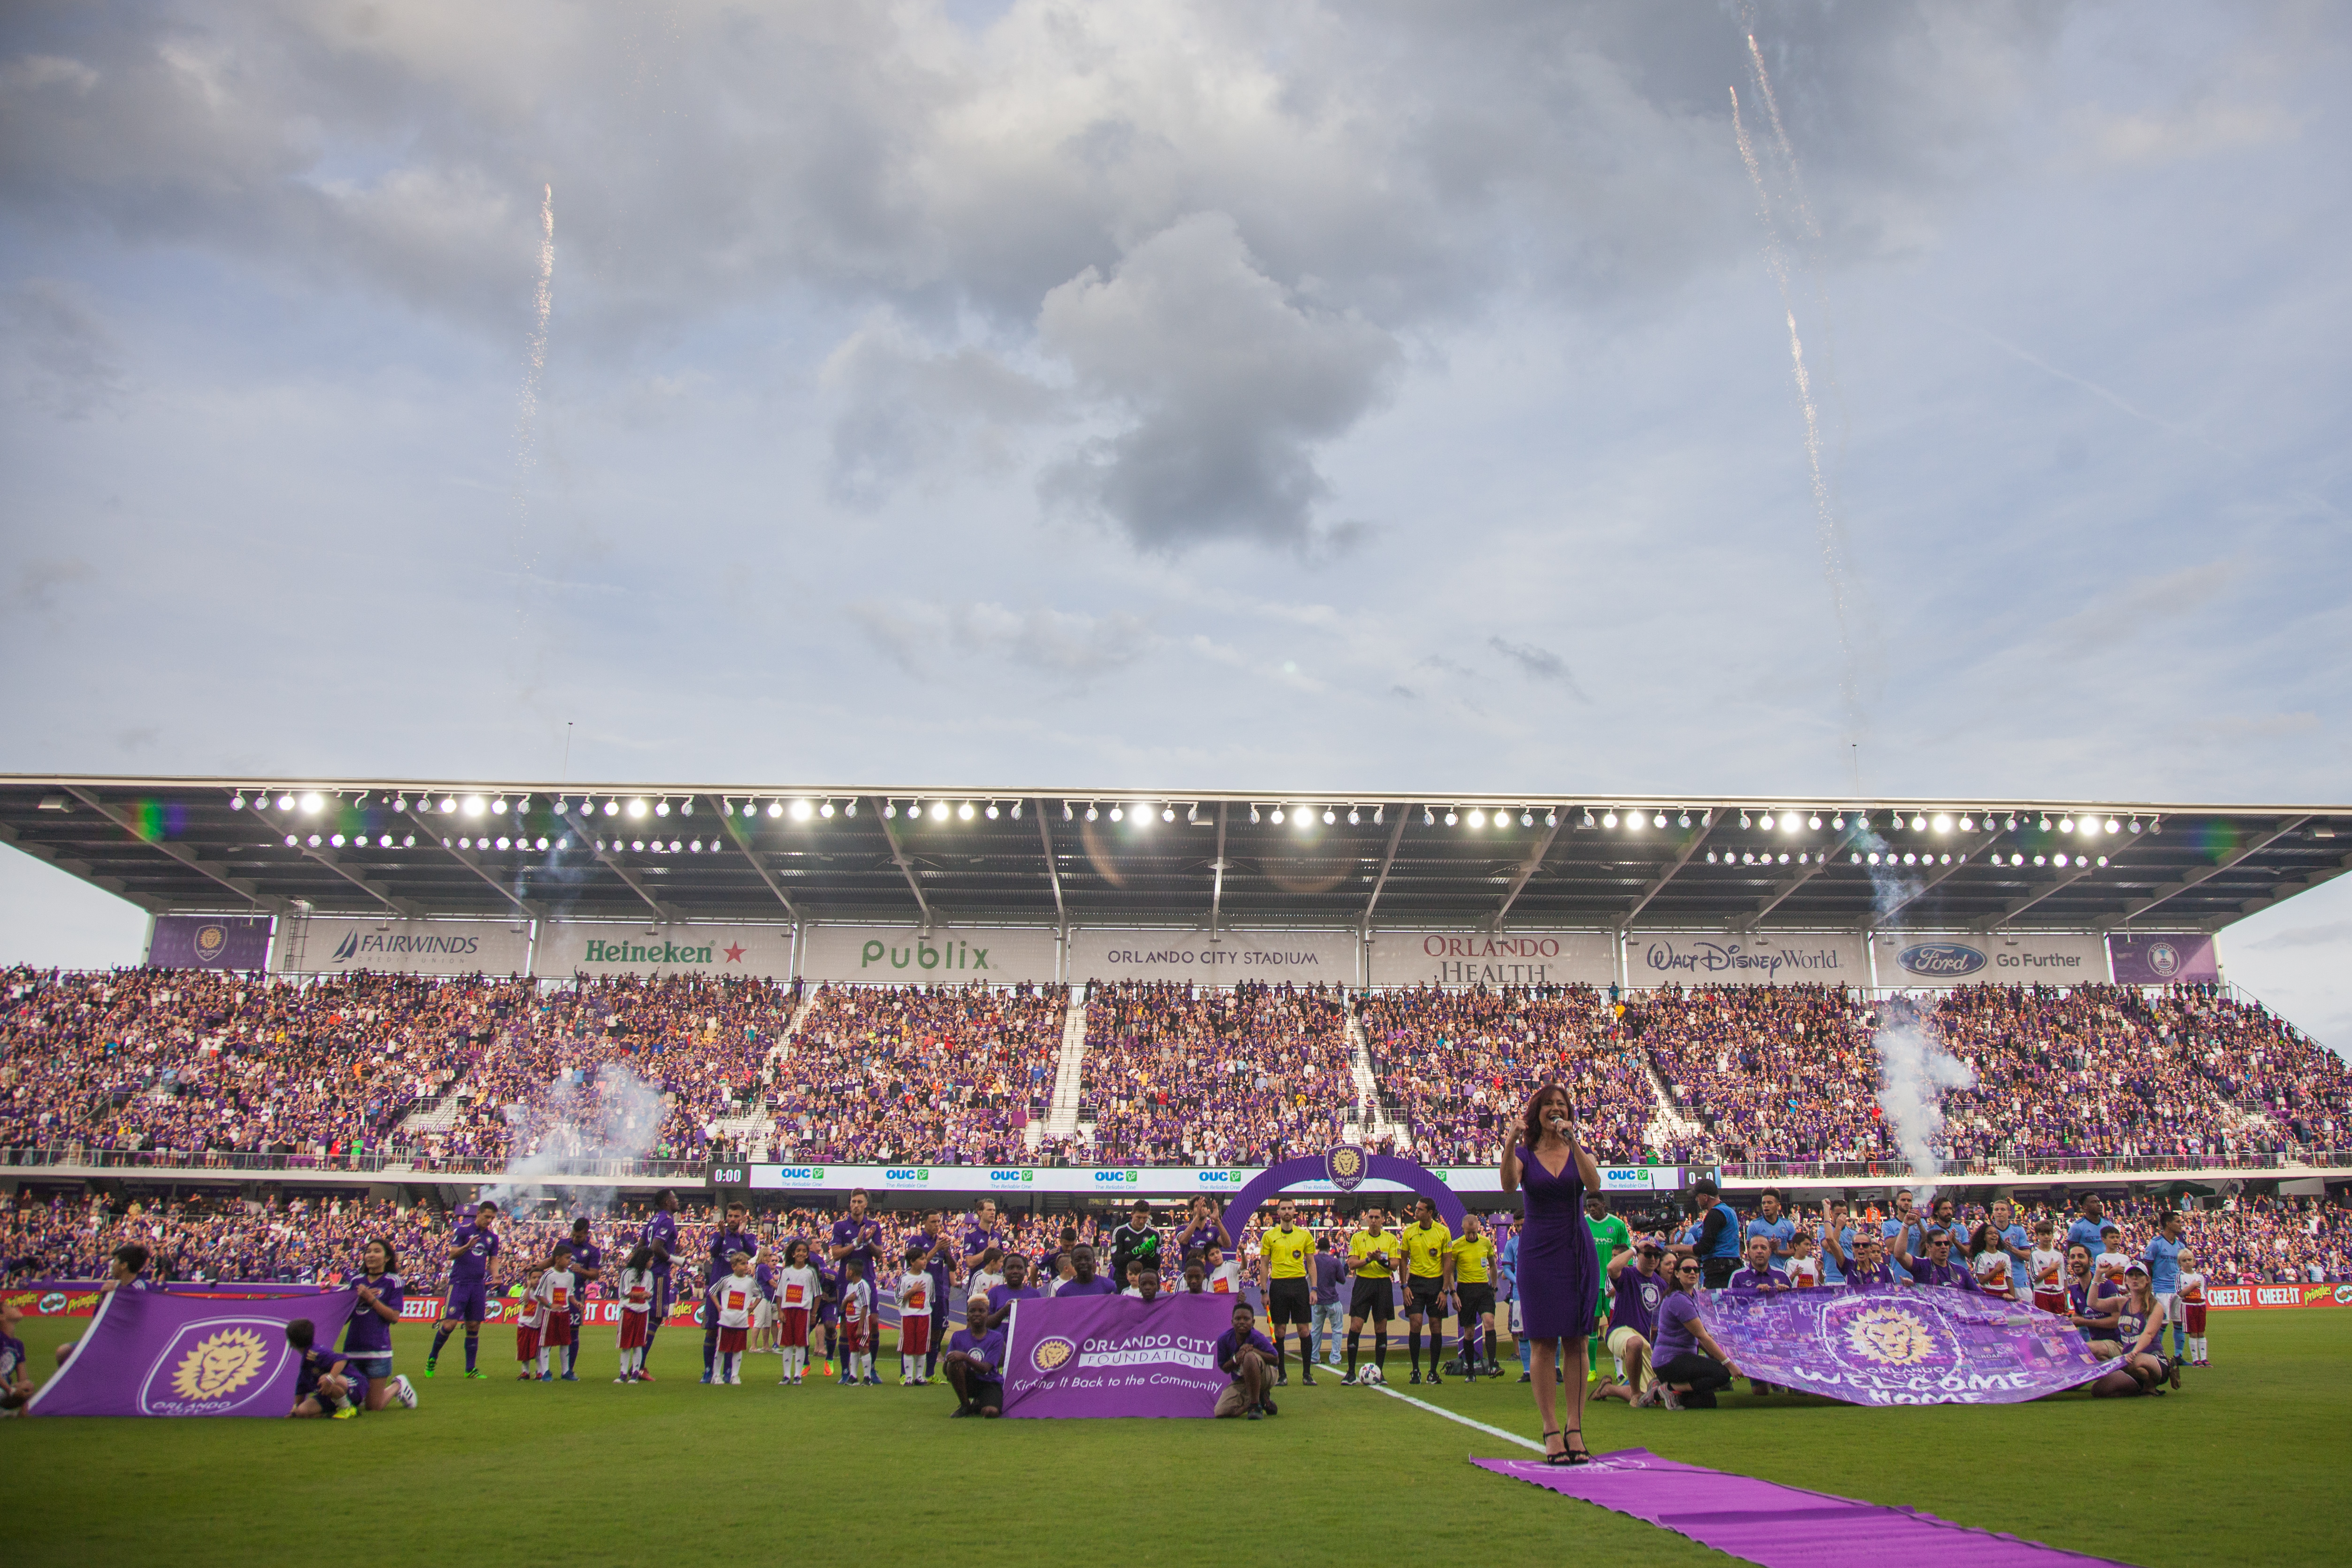 Orlando City Stadium Major League Soccer opening match 2017 season